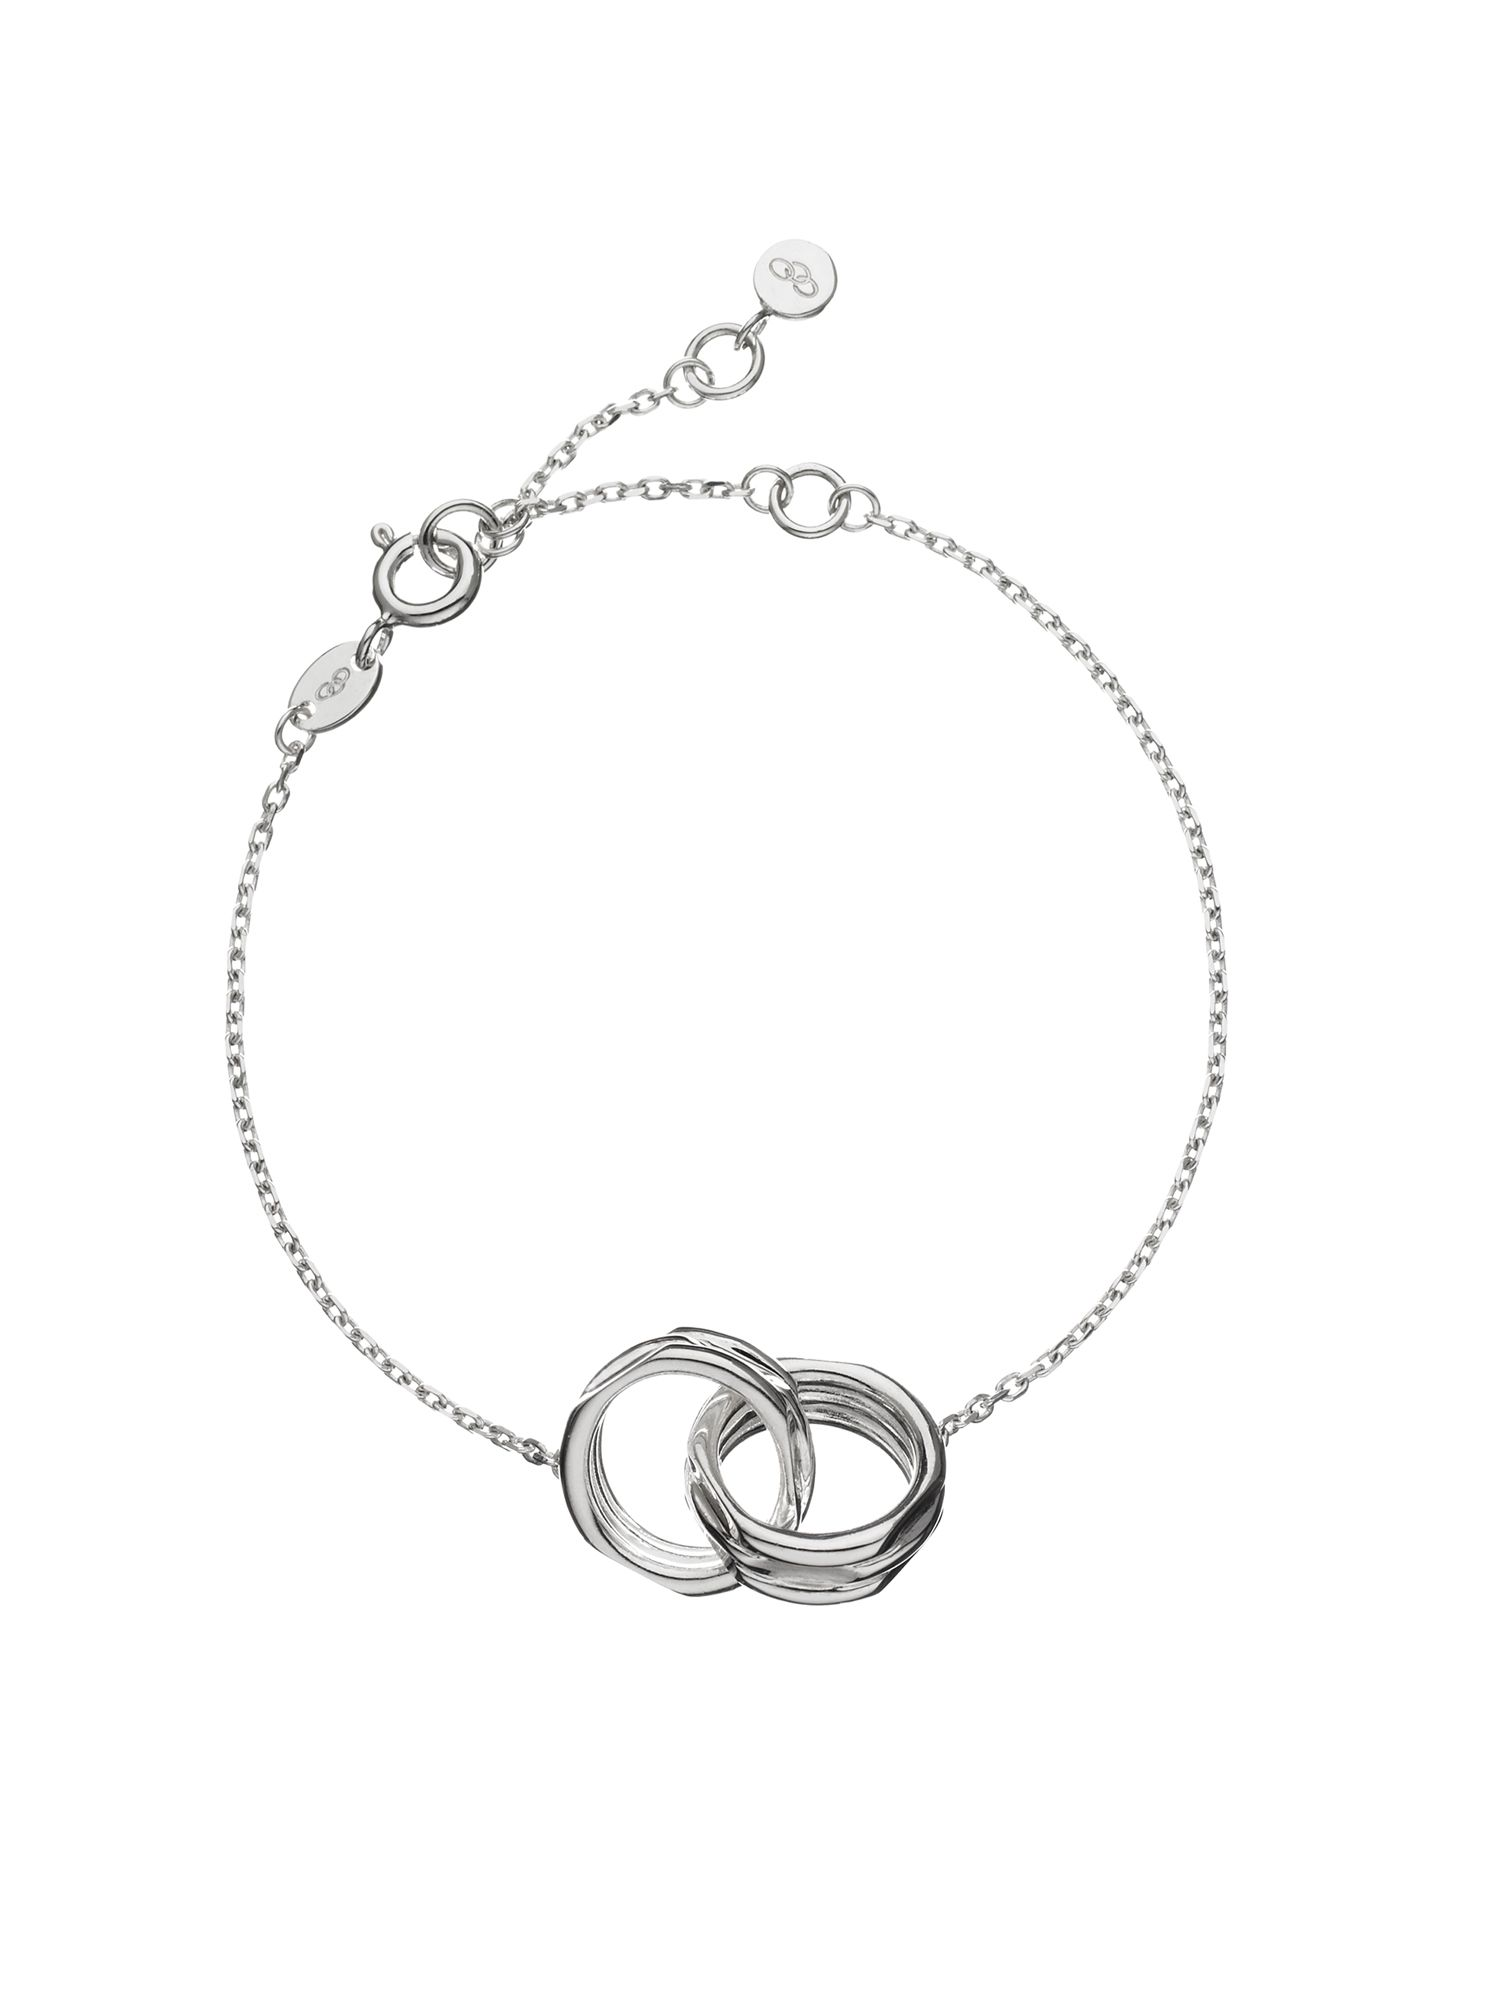 Links of London 20-20 Interlocking Bracelet, Silver